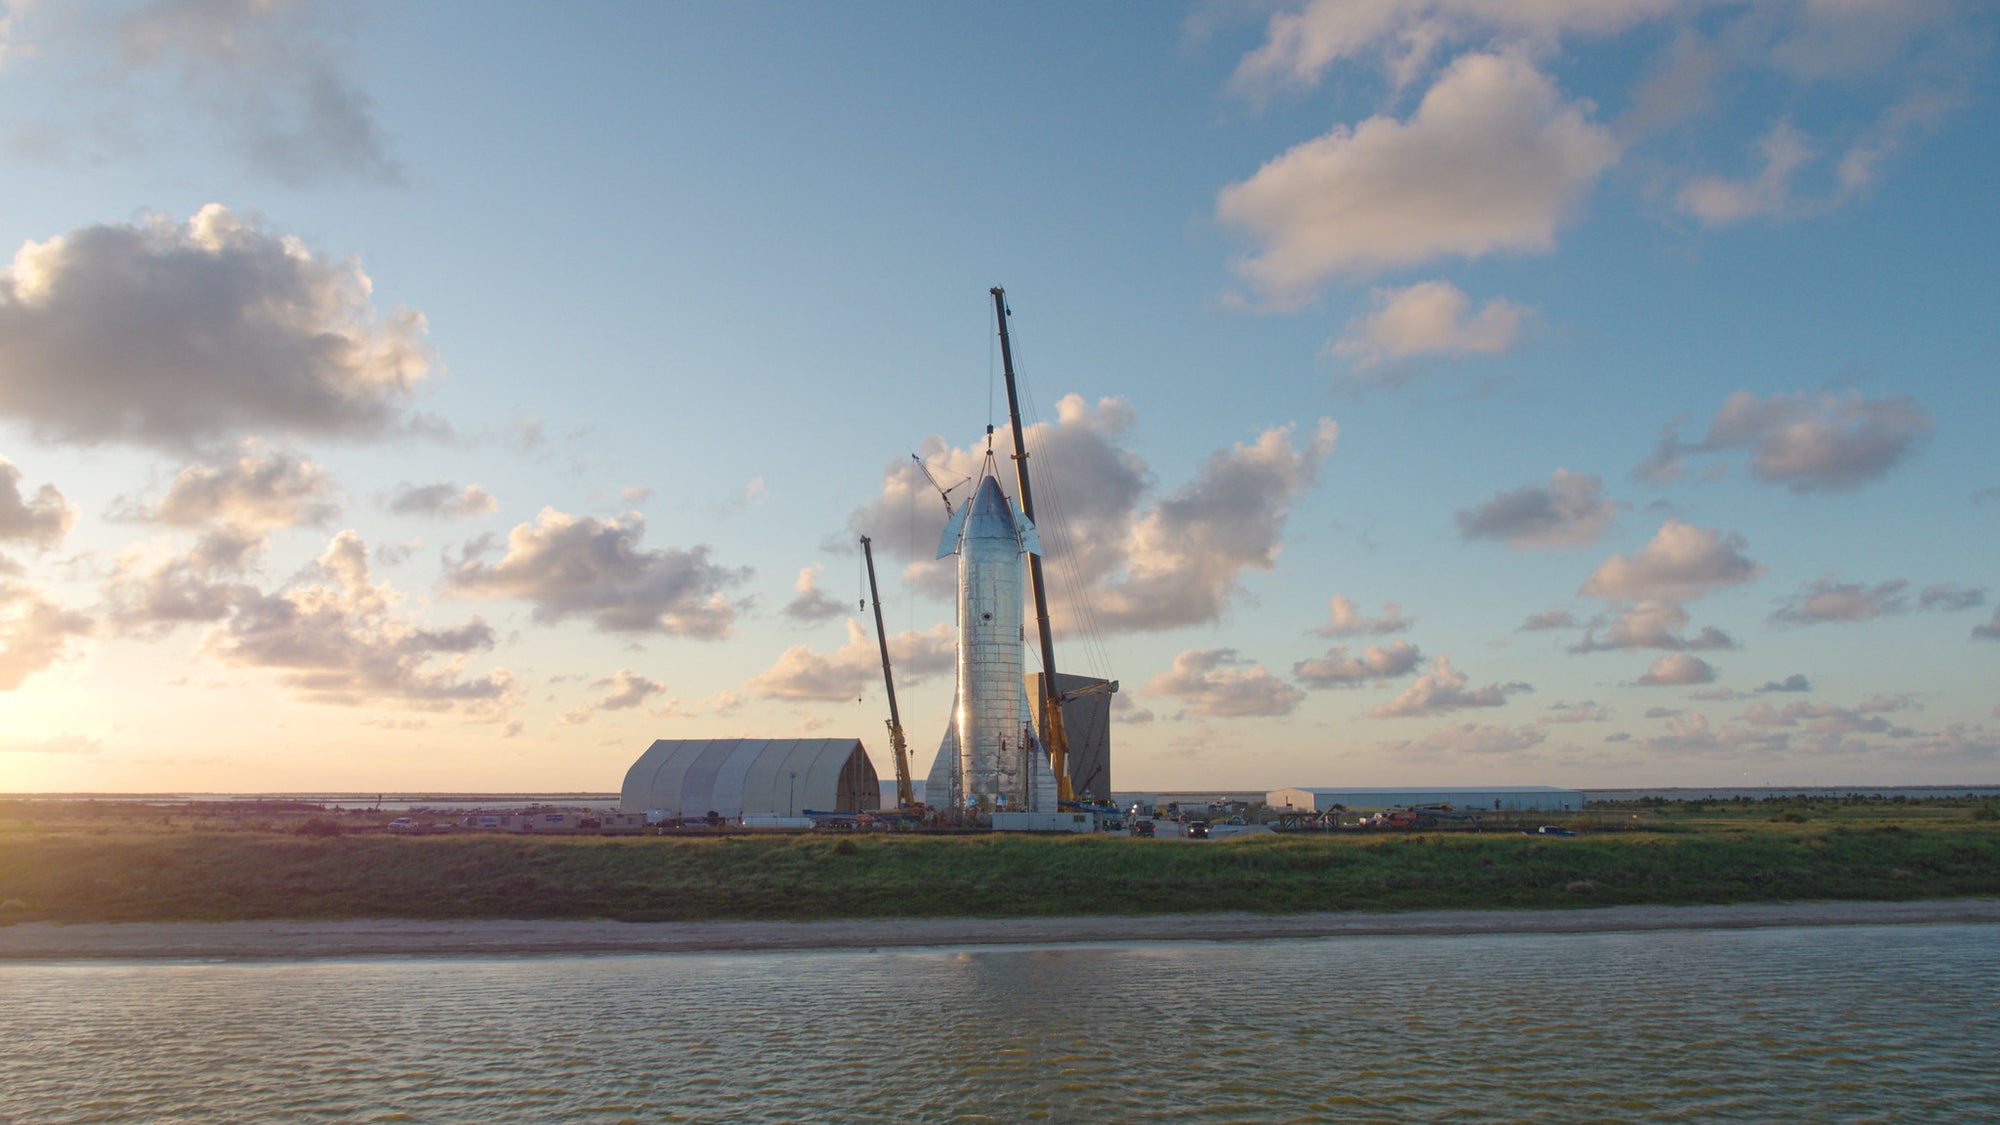 SpaceX is hiring a Resort Development Manager to develop a '21st Century Spaceport' and Resort in Texas